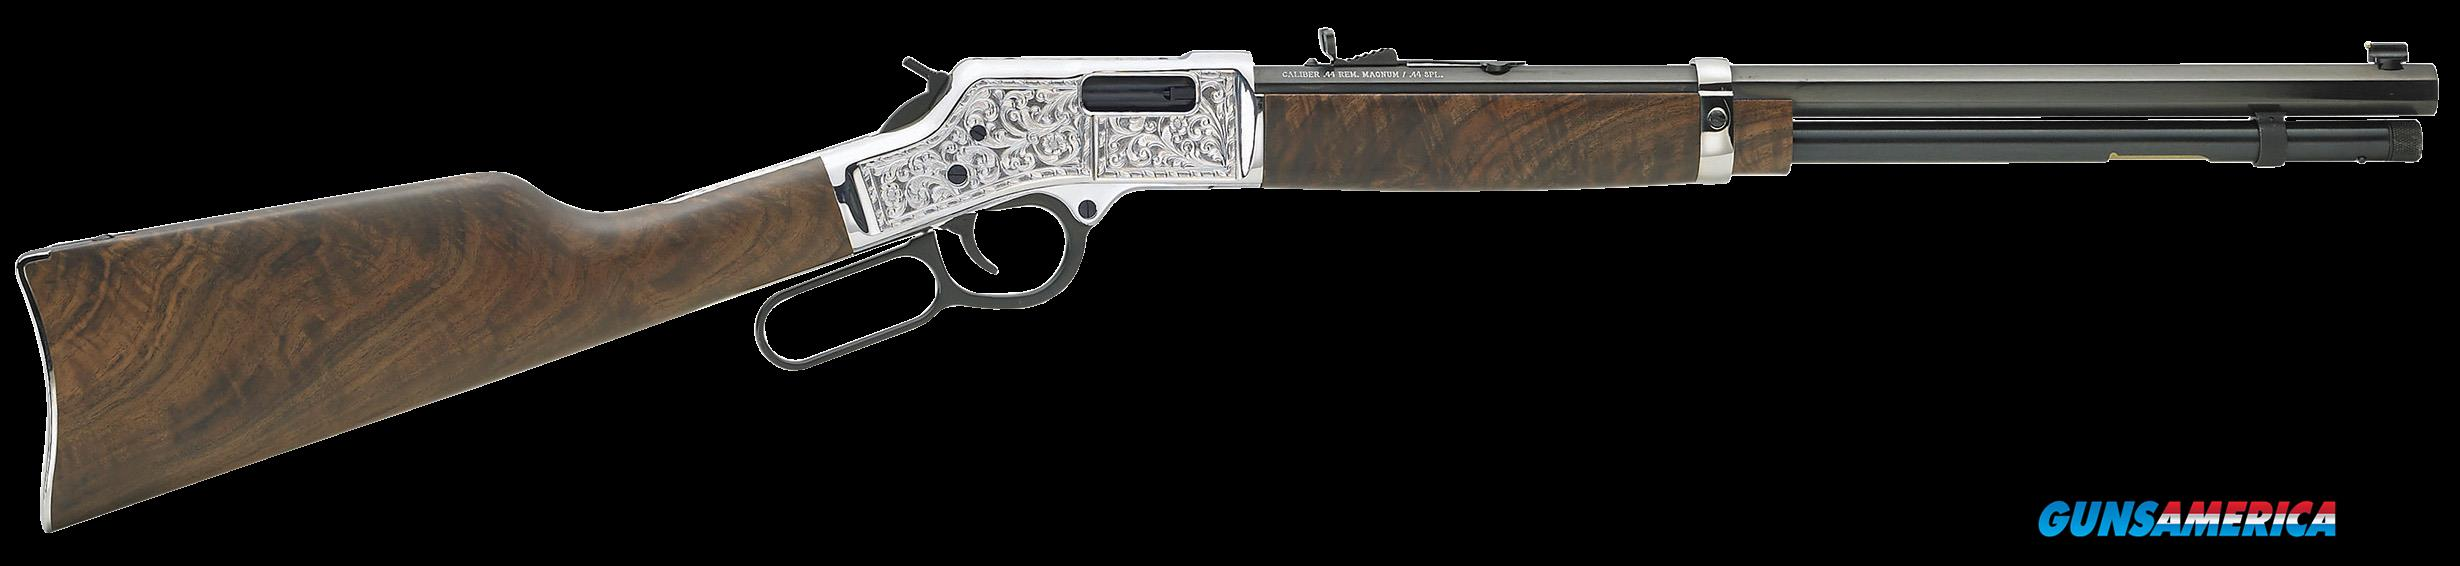 "Henry H006CSD Big Boy Silver Deluxe Engraved Lever 45 Colt (LC) 20"" 10+1 American Walnut Stk Blued  Guns > Rifles > Henry Rifles - Replica"